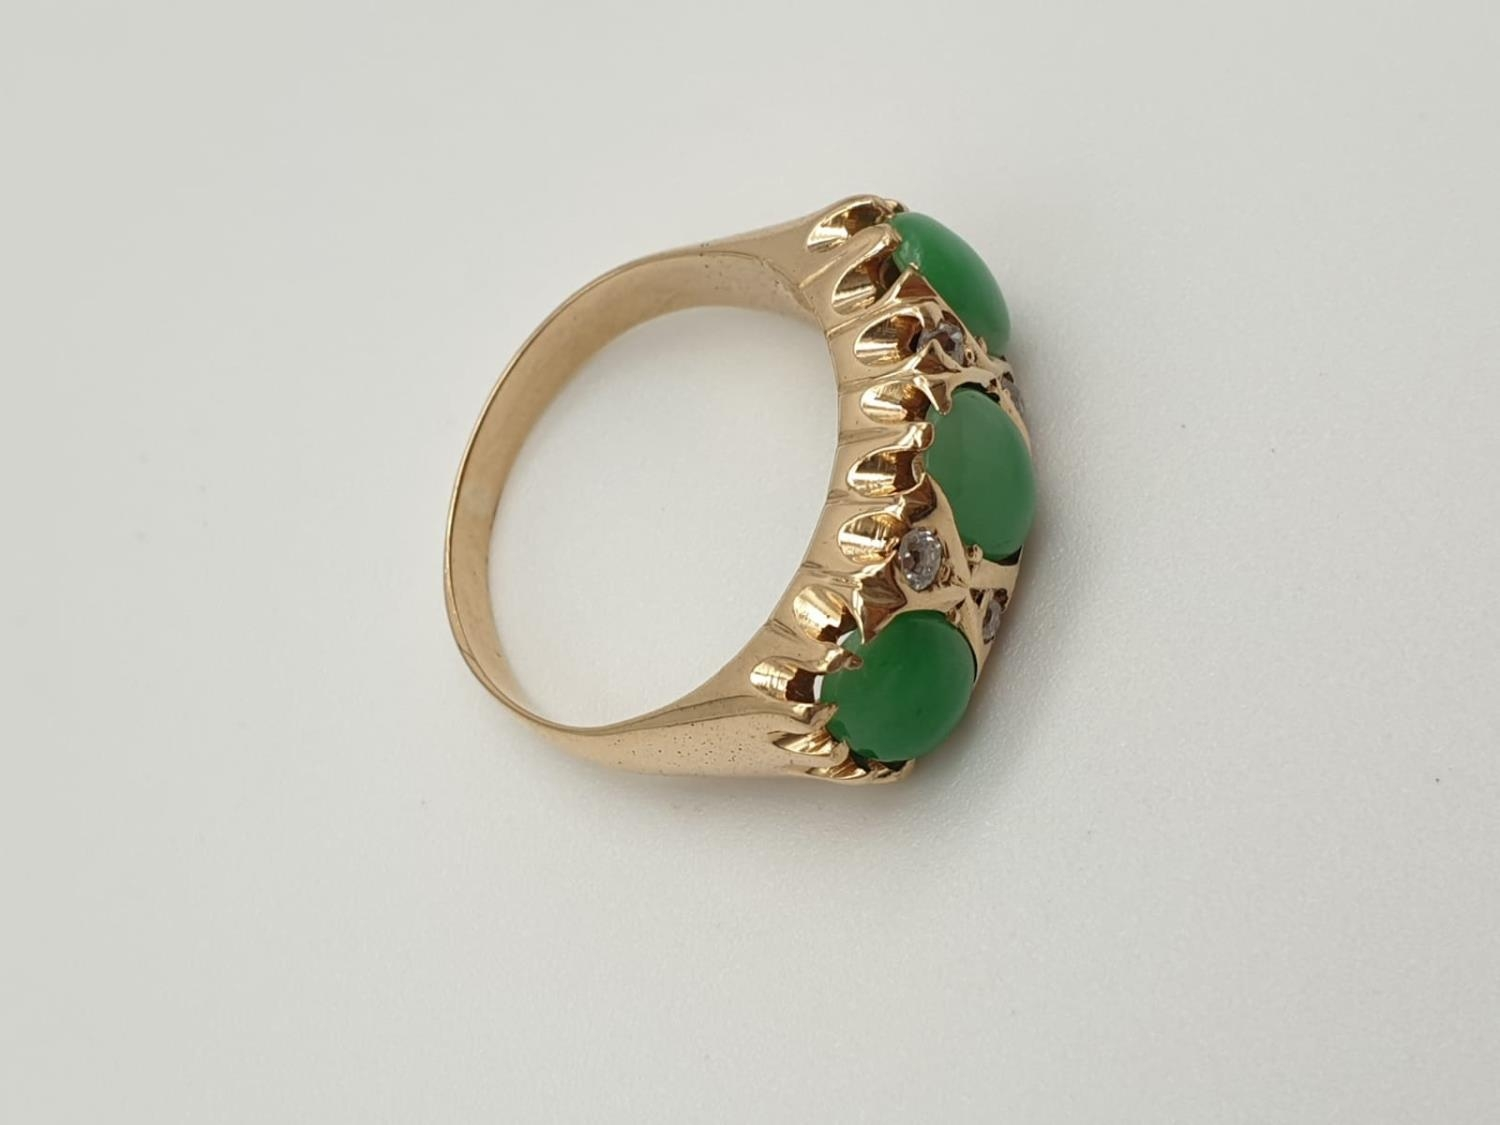 14k yellow gold antique ring with trilogy green jadeite and decorated with diamonds, weight 8.6g and - Image 3 of 6